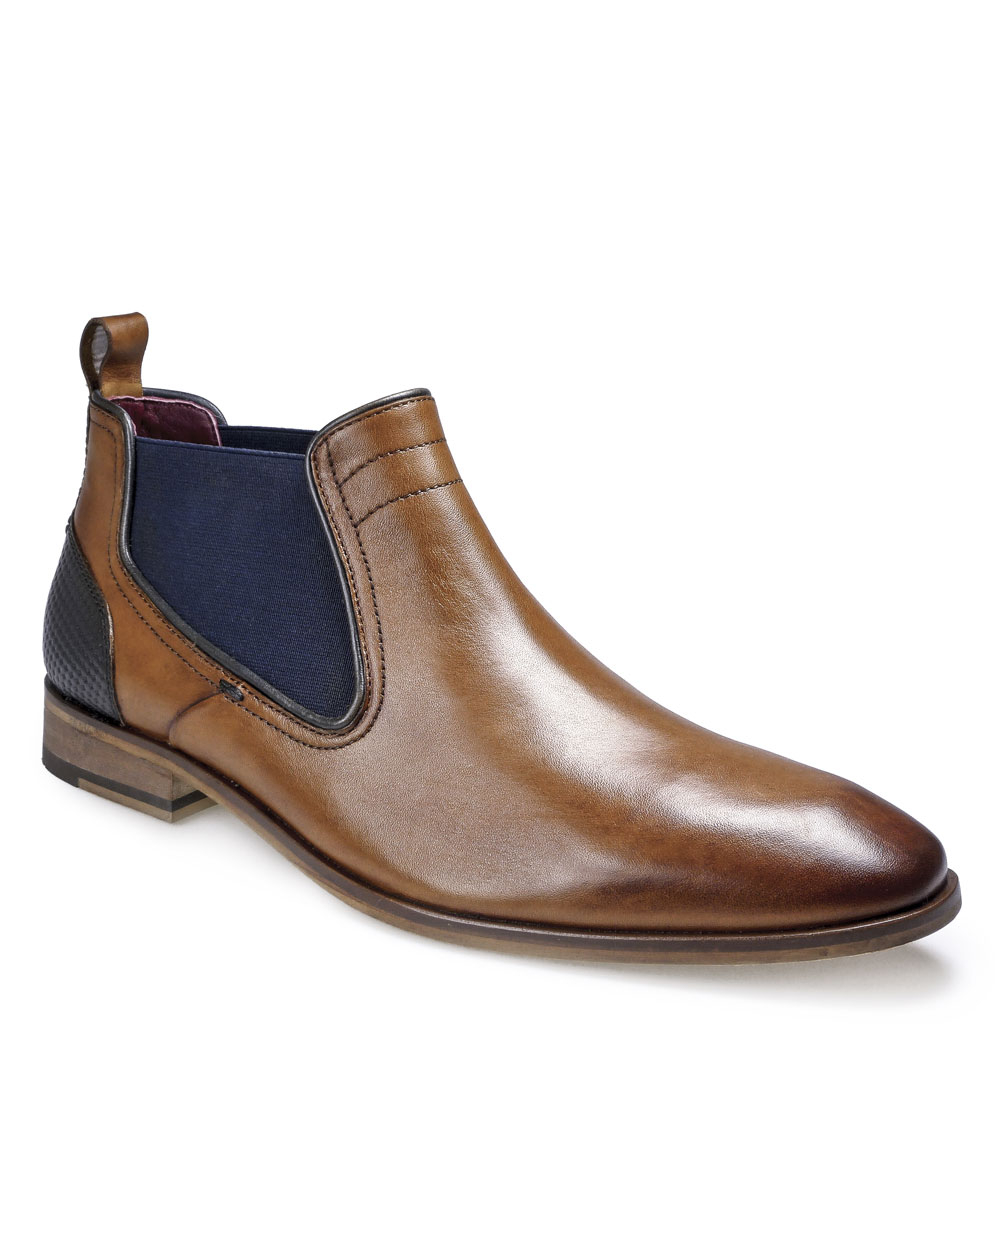 Pod Paul O'Donnell Odessa Chelsea Ankle Boot (cognac/navy)